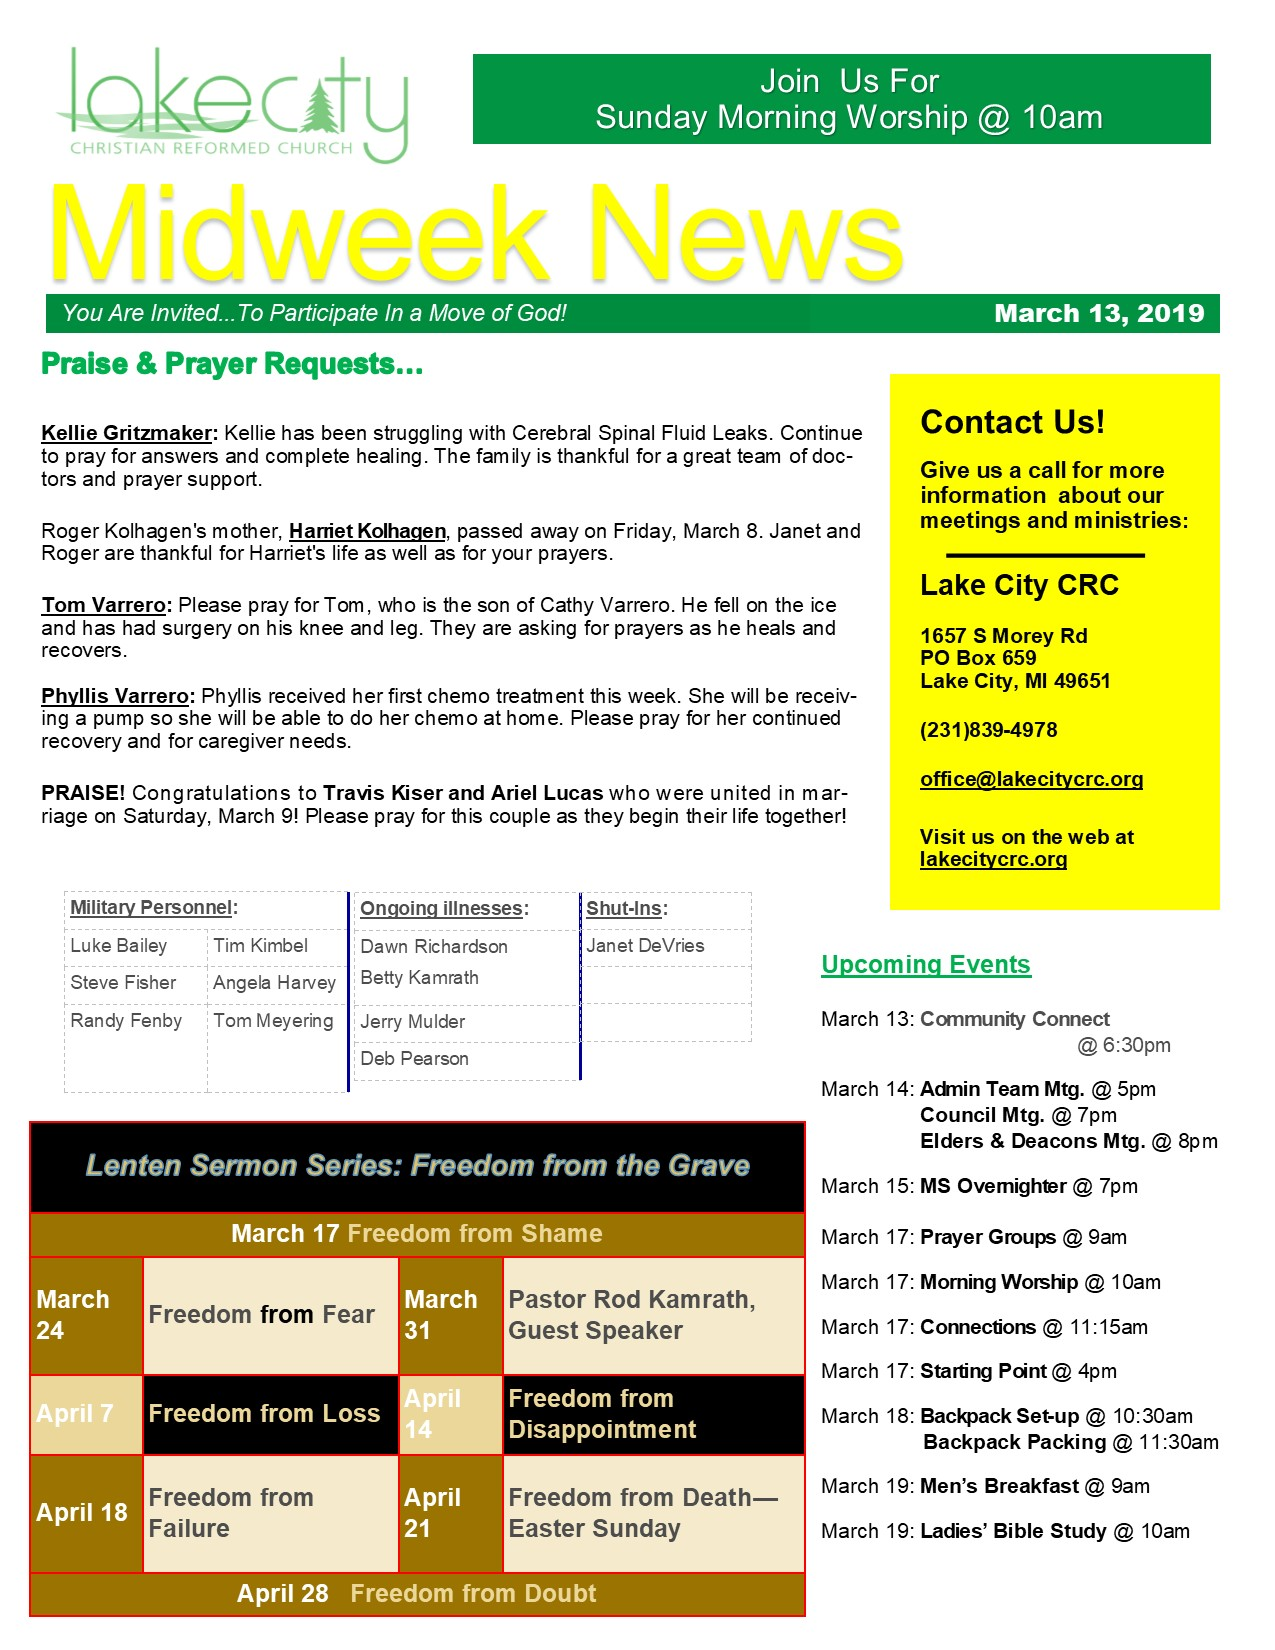 March 13, 2019 Mid-Week News